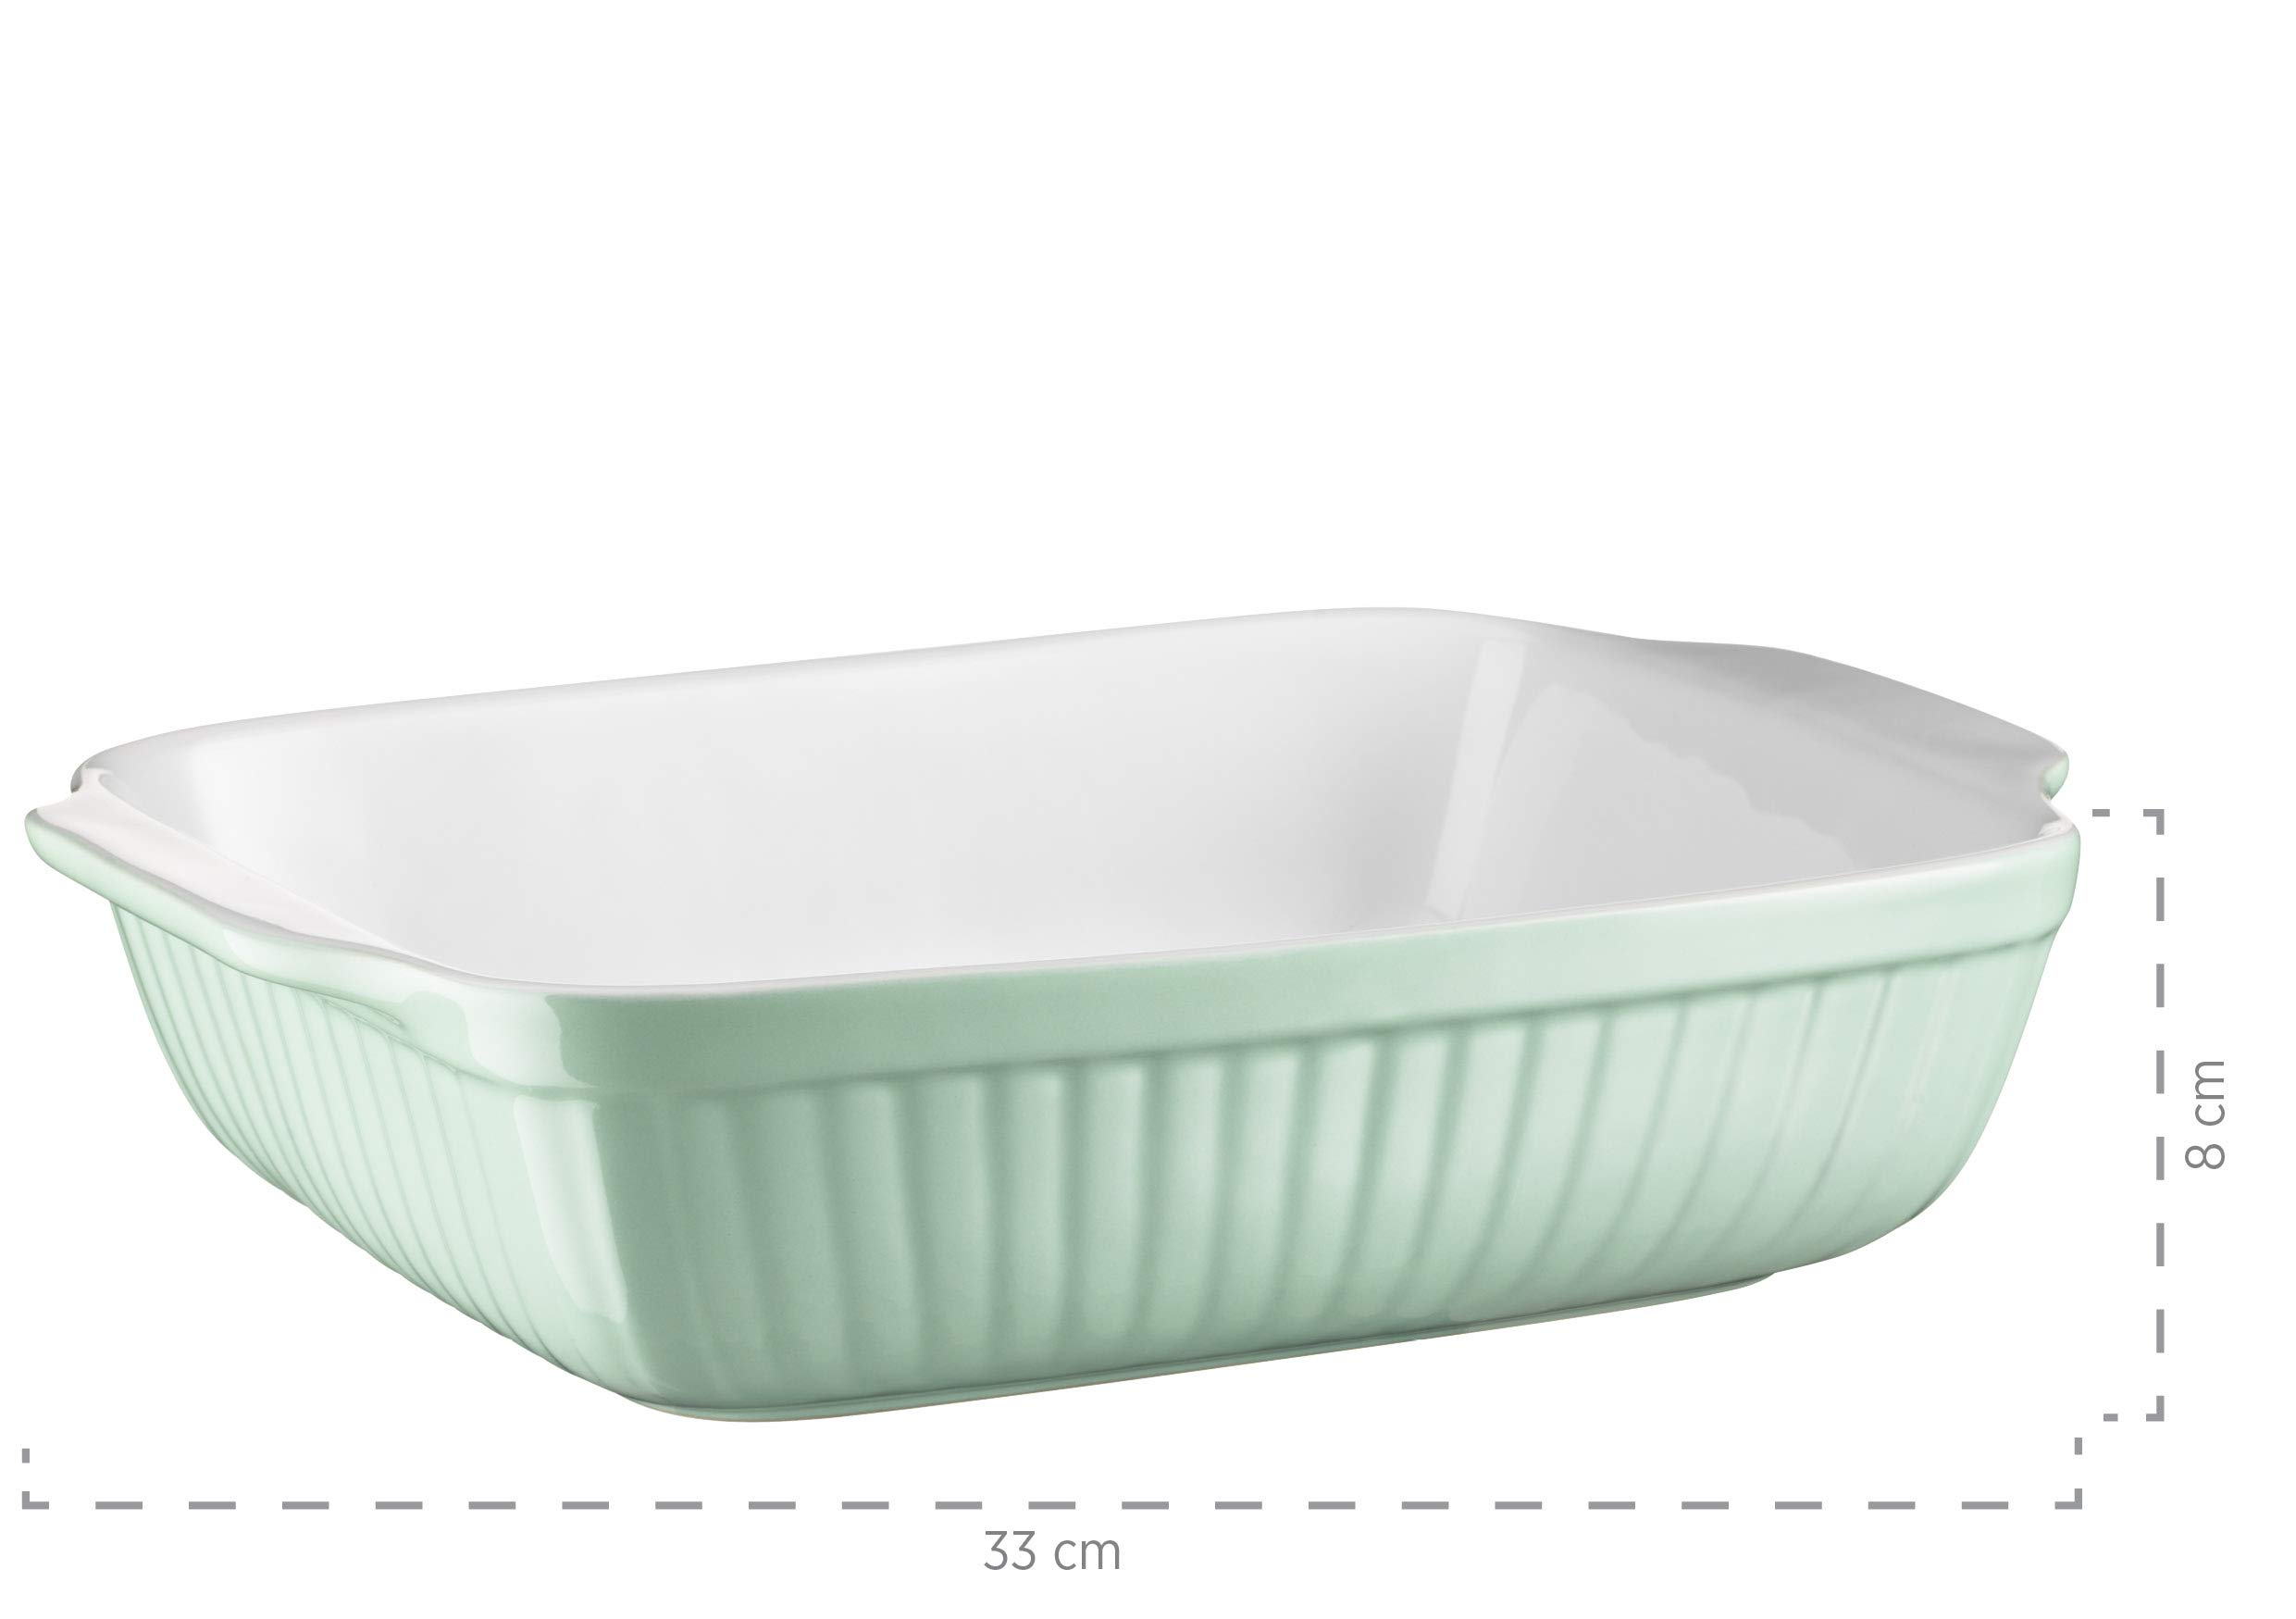 Mäser Kitchen Time 931486 Rectangular Baking Dish for Lasagne, Baking and Tiramisu Mould, Scratch and Cut-Resistant Square Oven Dish Ceramic by Mäser (Image #1)